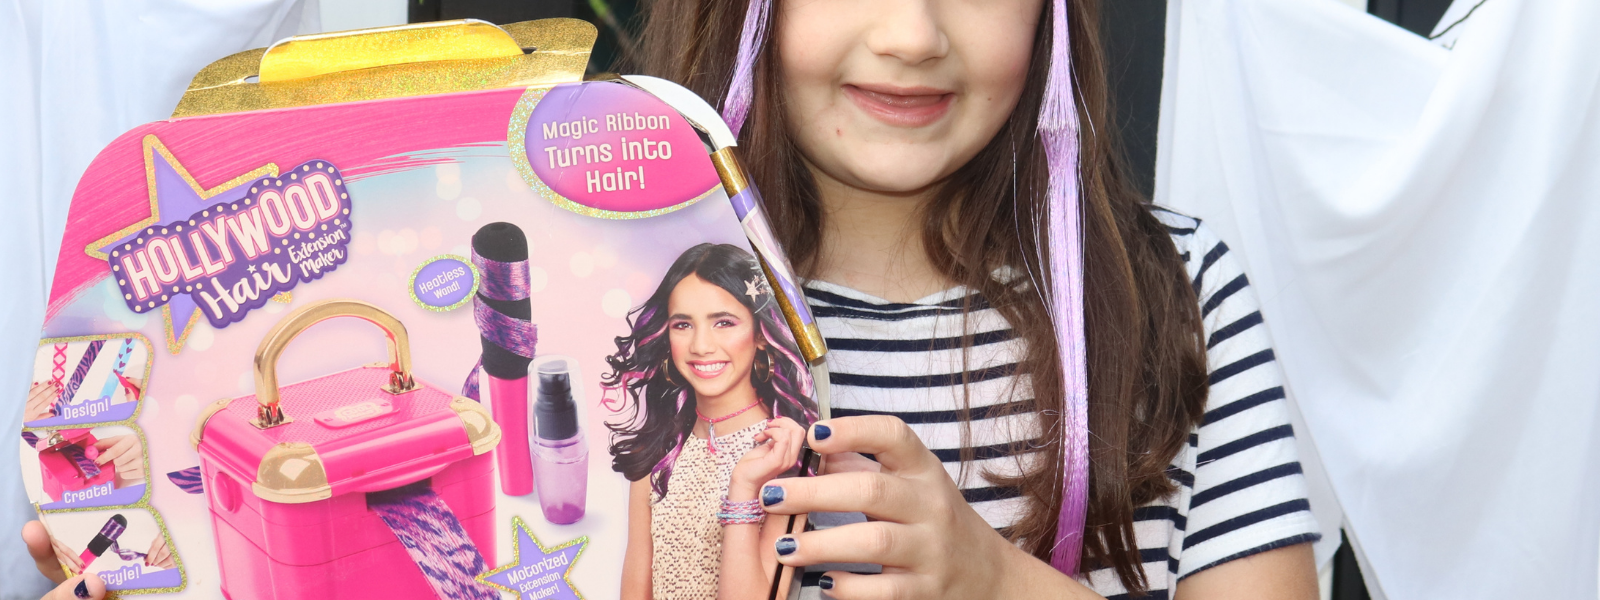 Transform your look with the Hollywood Hair Extension Maker